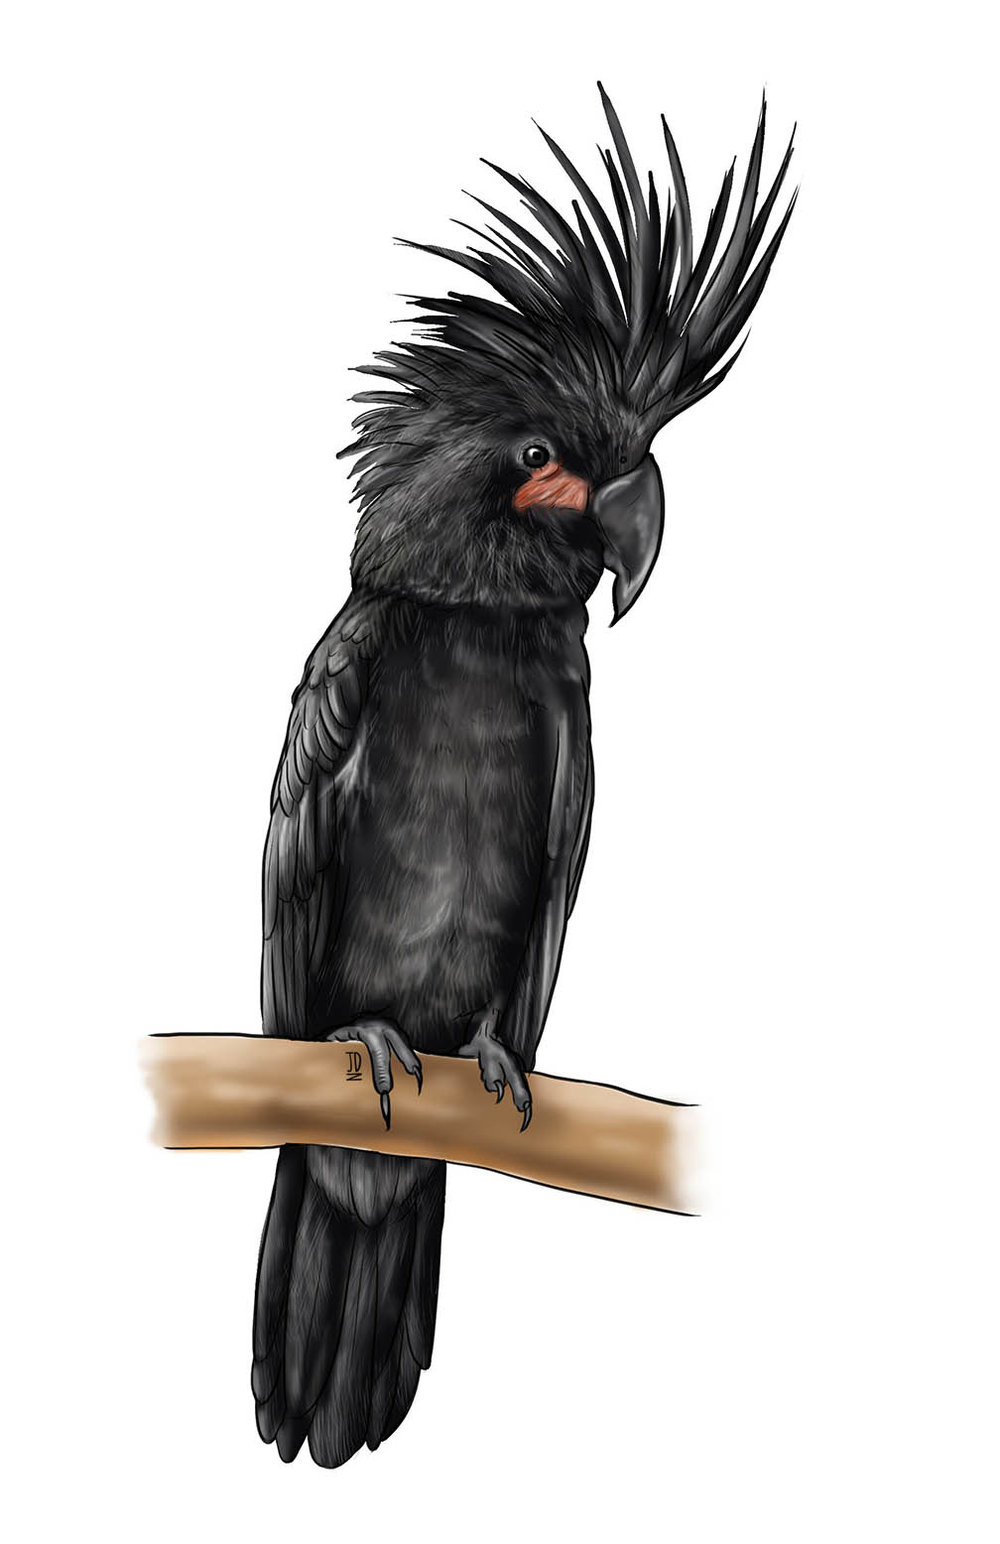 BlackPalmCockatoo_JillianDitner.jpg